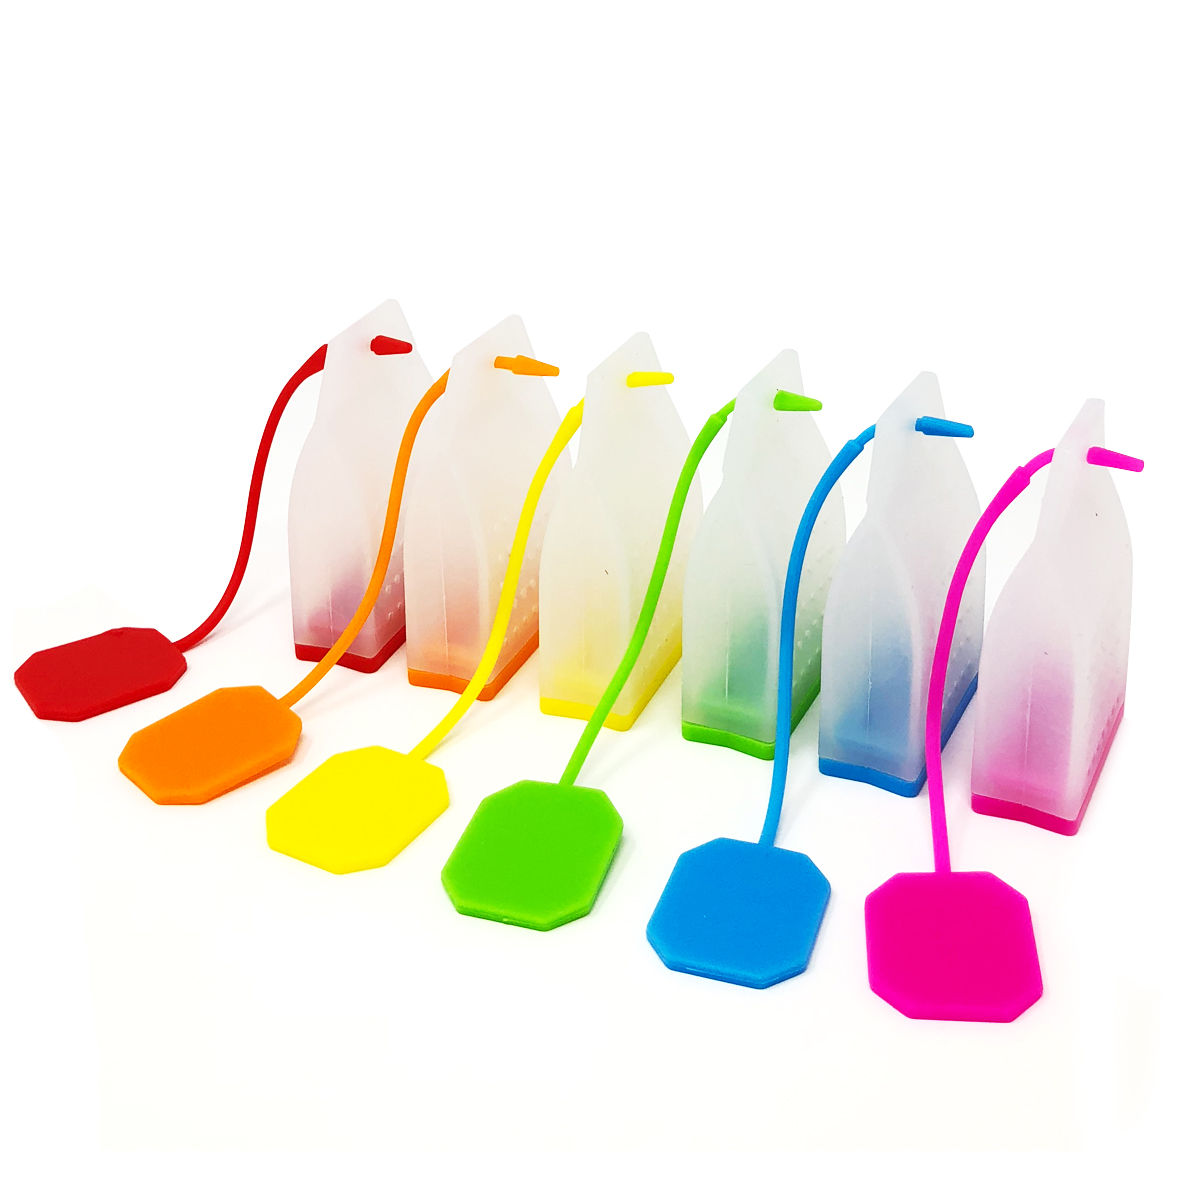 Wrapables® Reusable Silicone Tea Infusers for Loose Leaf Teas Tea Filter Tea Strainer (Set of 6)